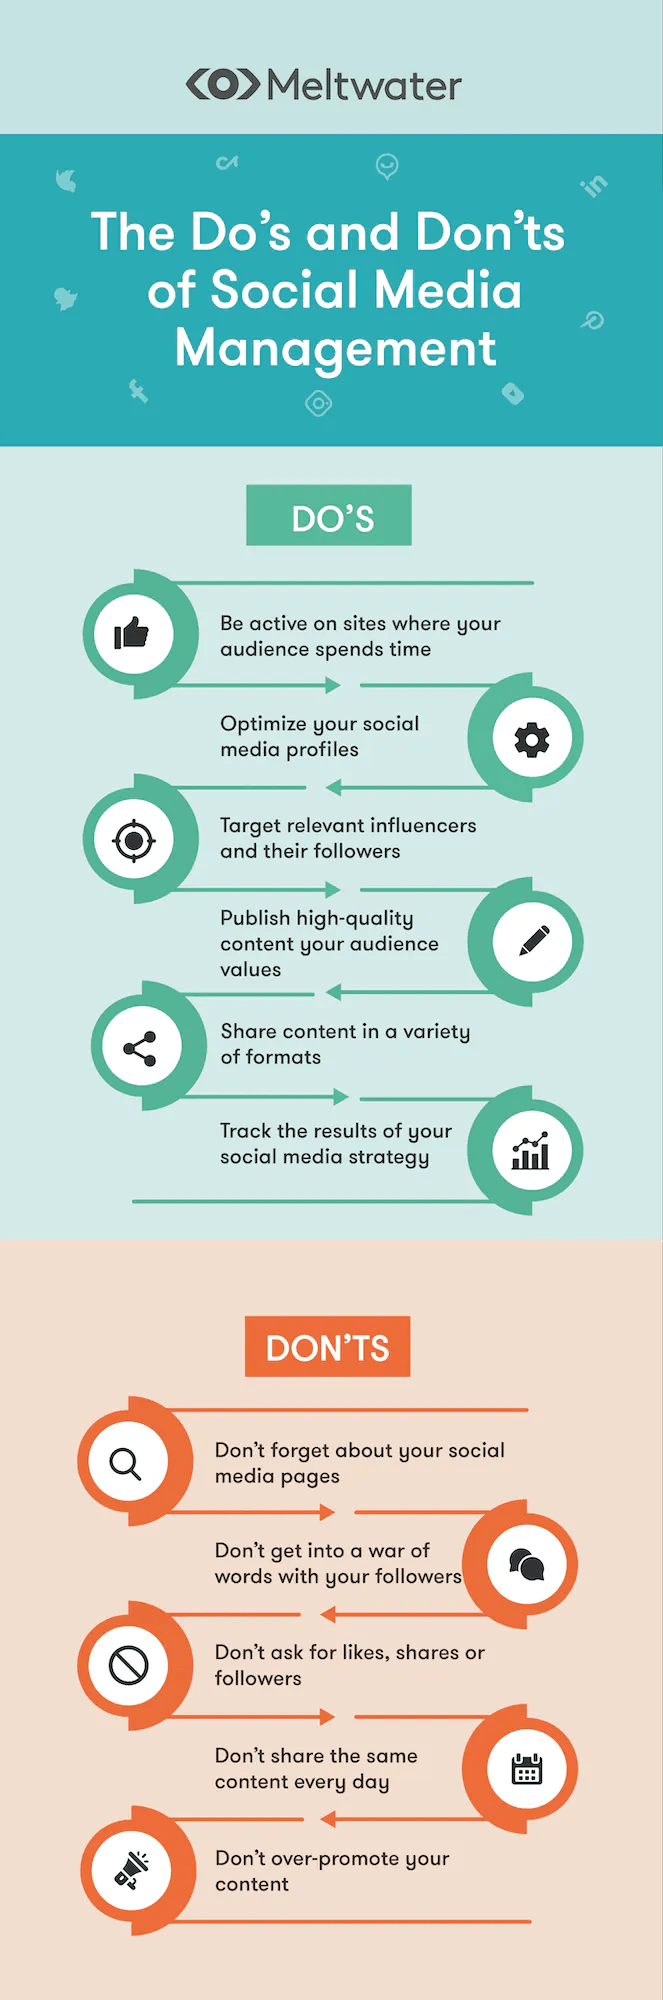 Listing covers the key do's and don'ts of effective social media management